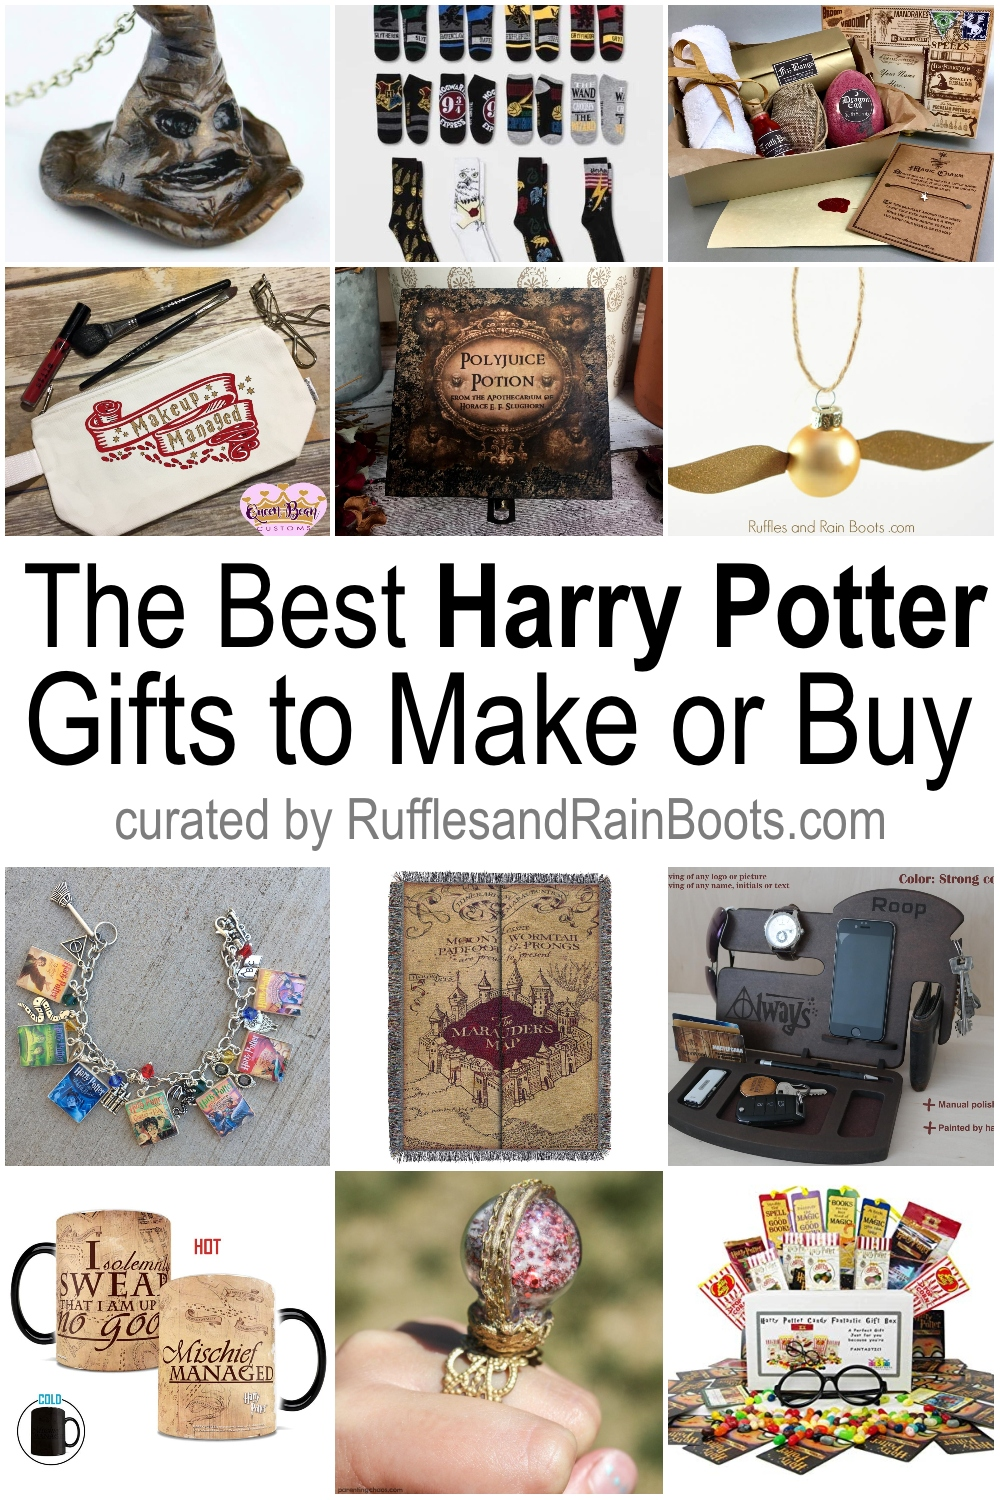 photo collage of harry potter diy gift ideas with text which reads the best harry potter gifts to make or buy